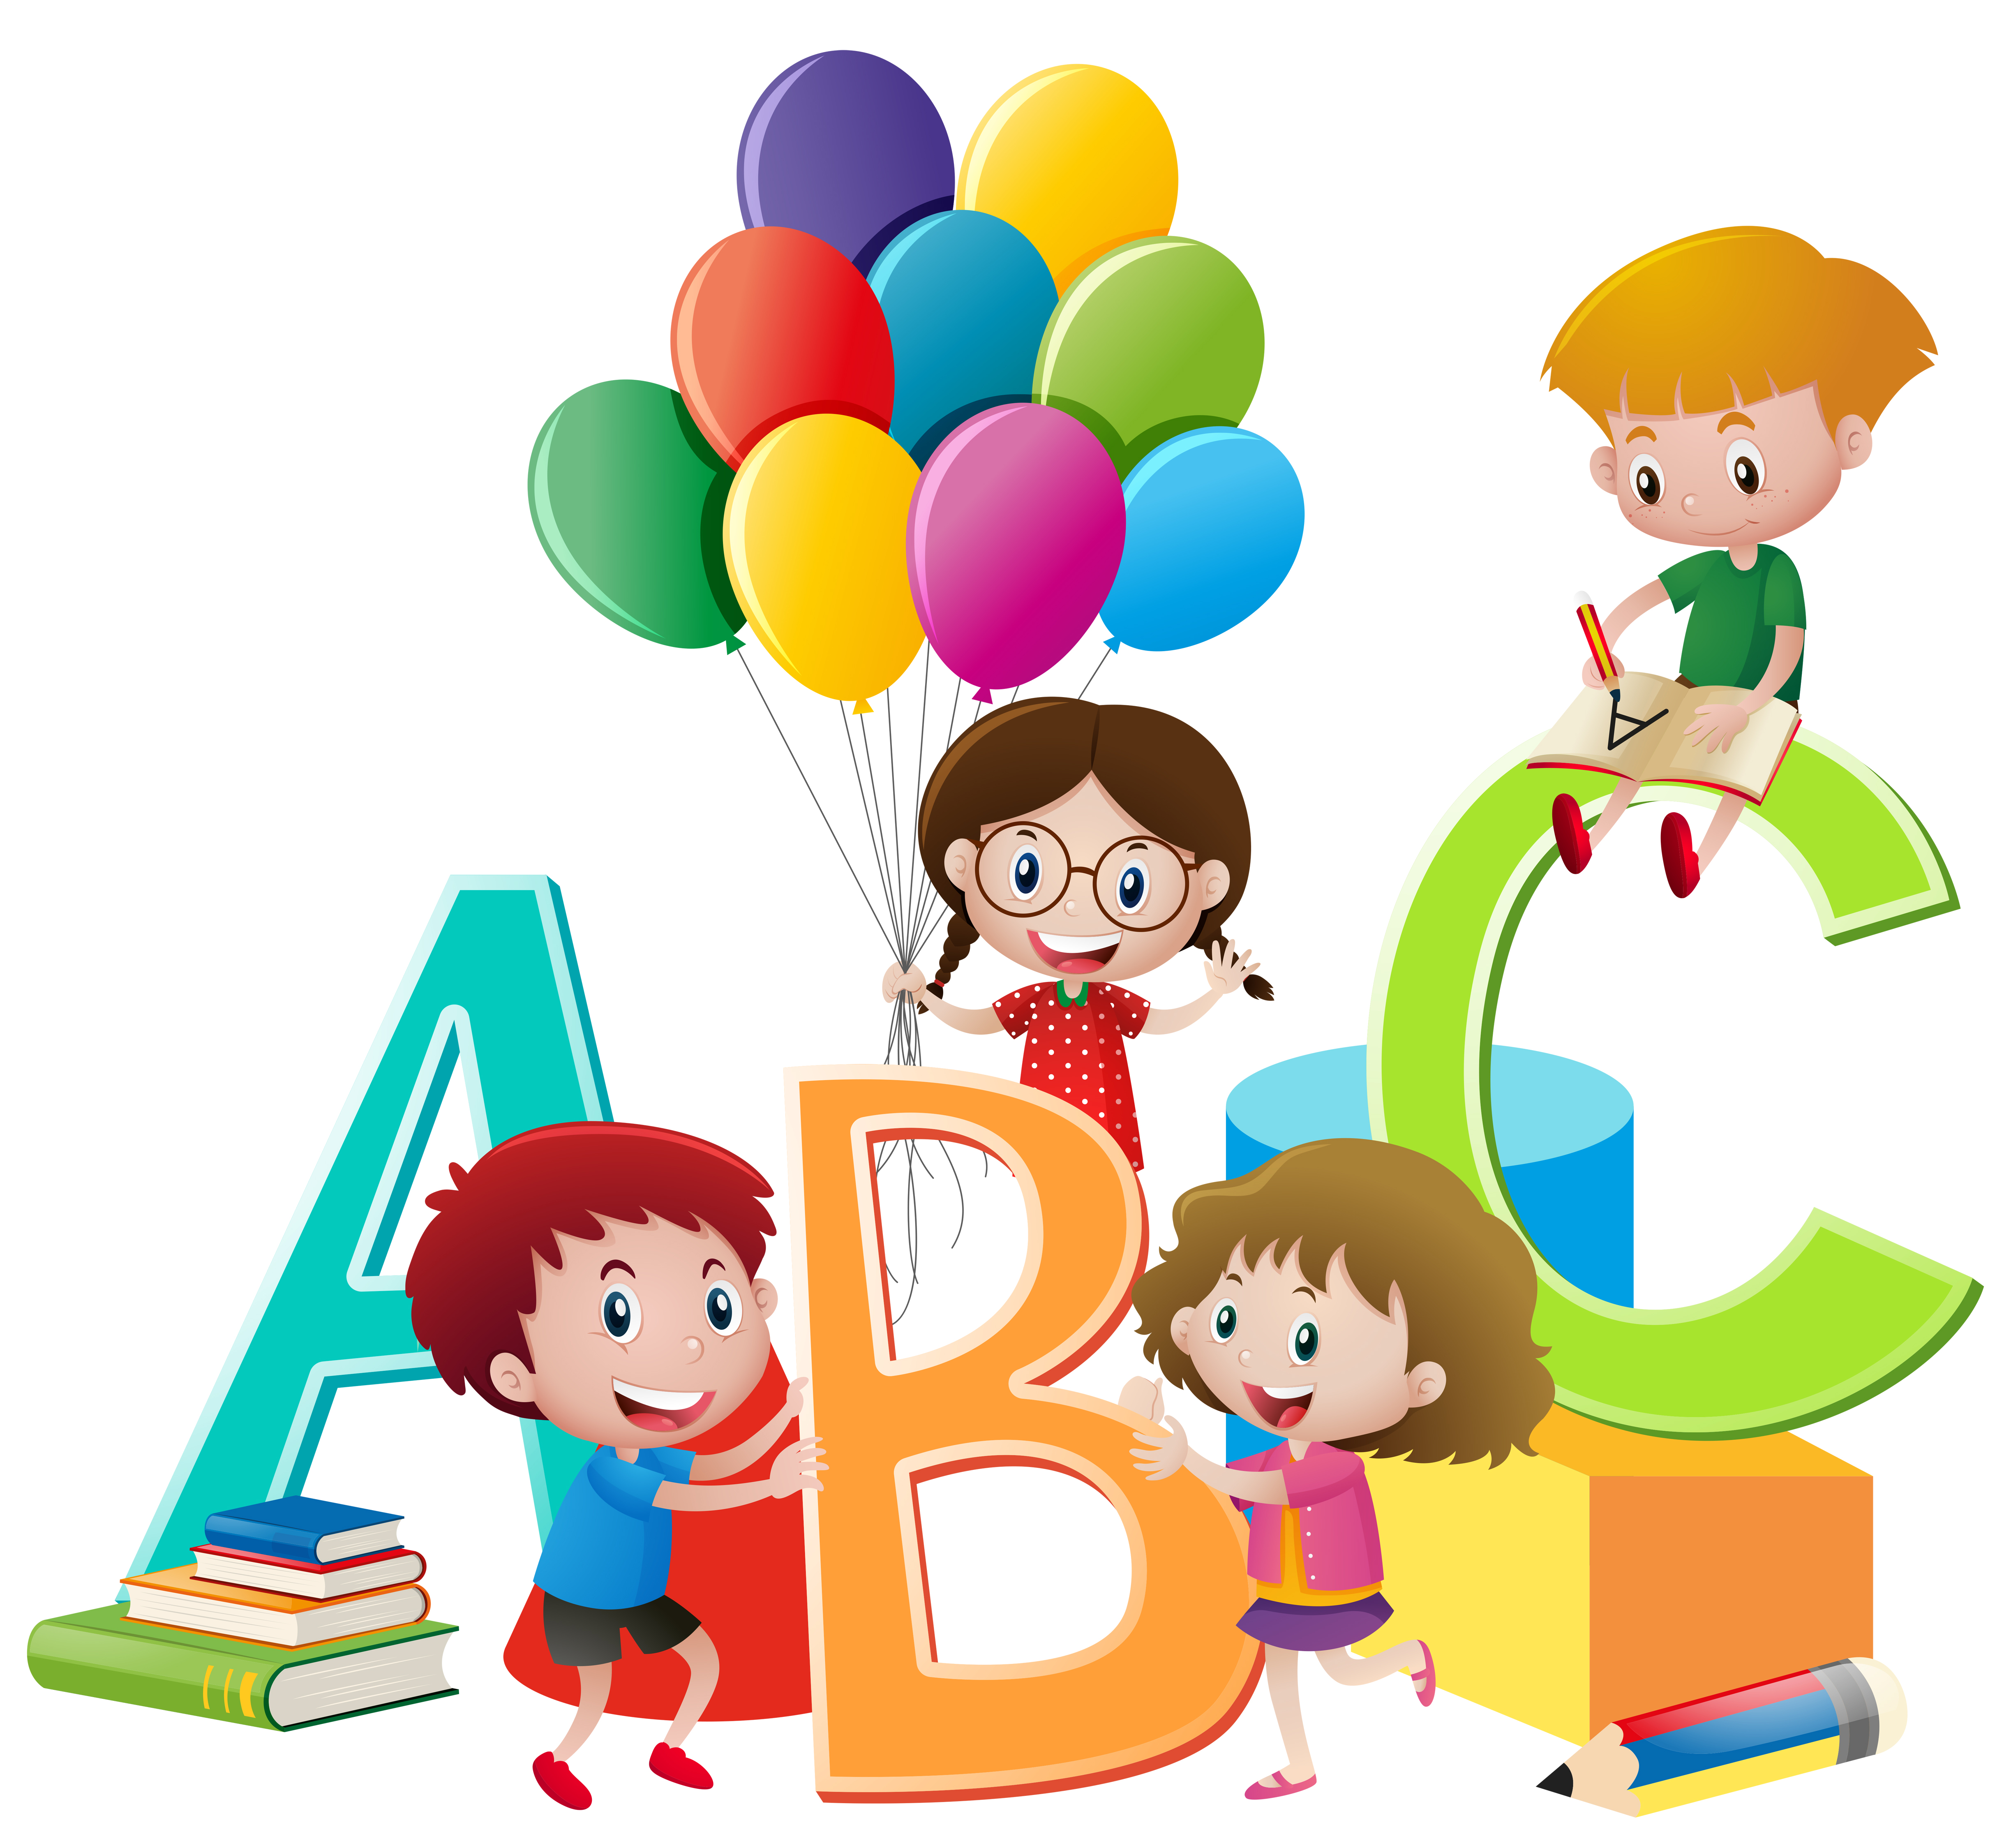 Children playing toys and English alphabets - Download Free Vectors,  Clipart Graphics & Vector Art